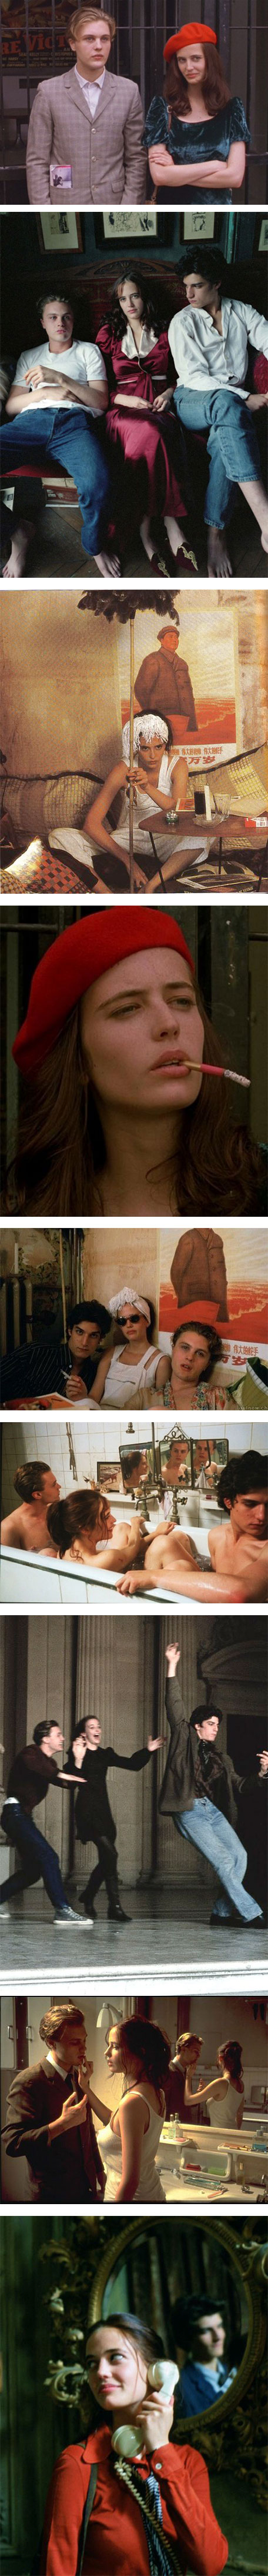 The Dreamers style